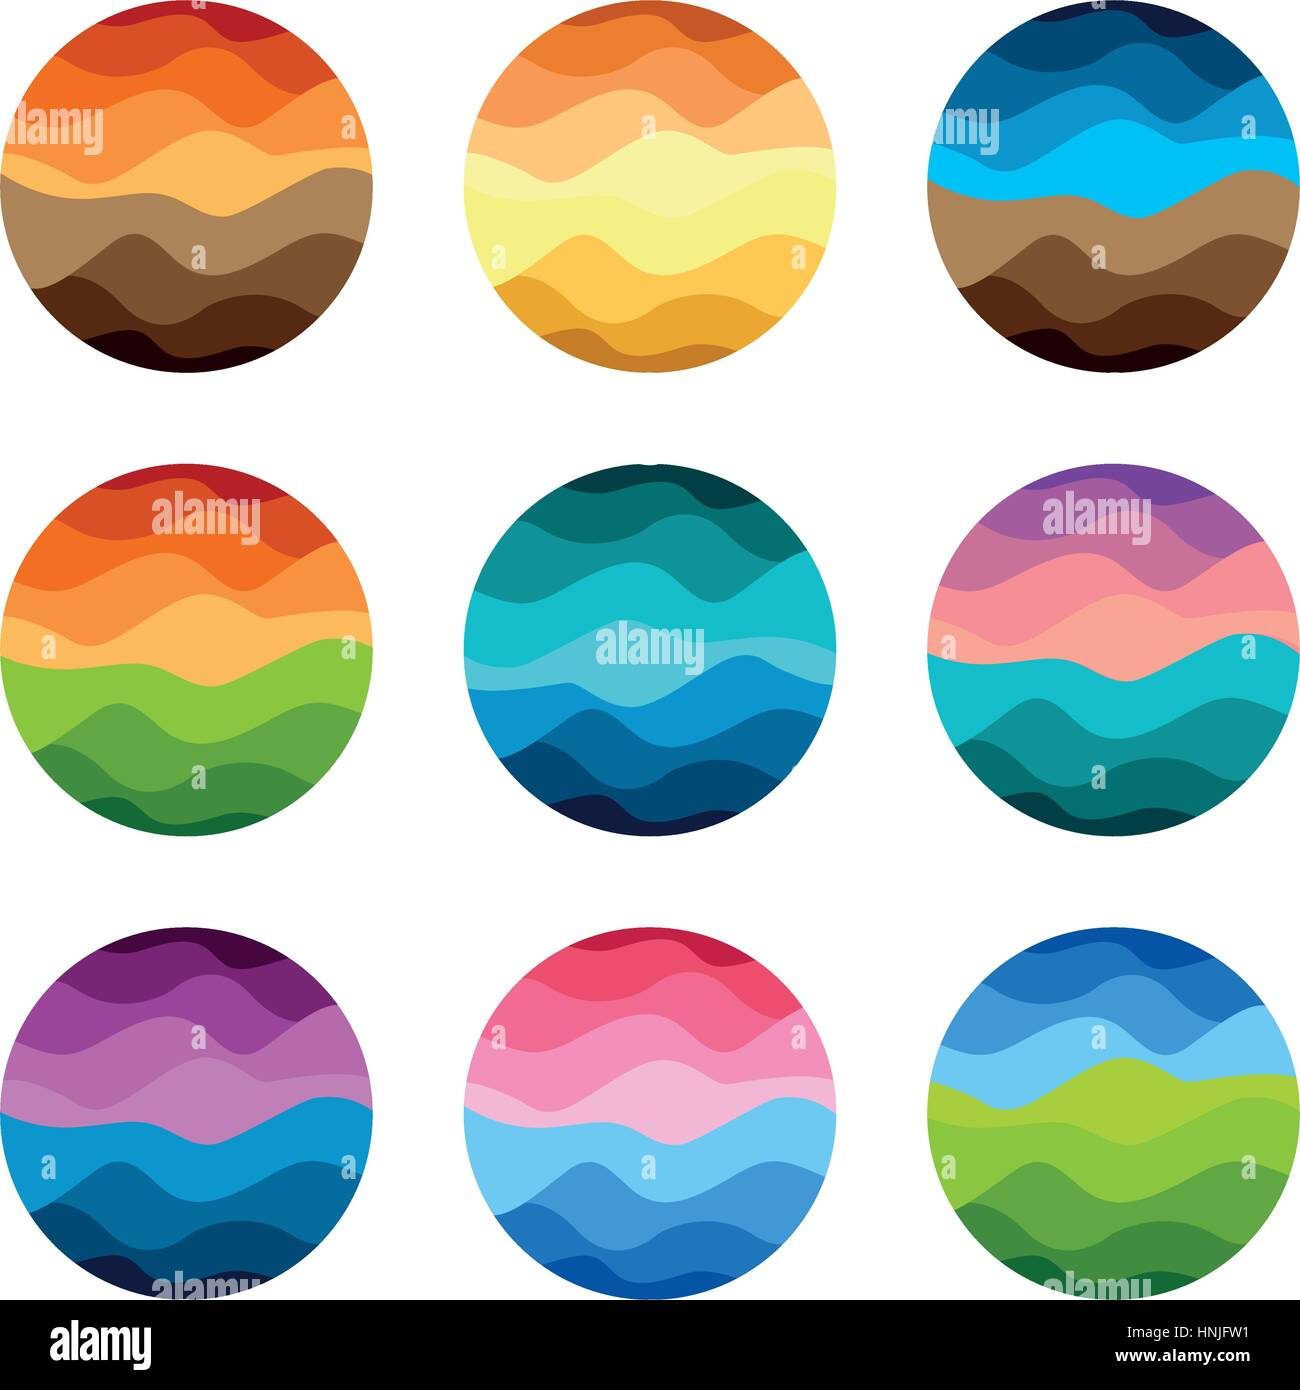 Isolated Abstract Colorful Round Shape Logos Set On White